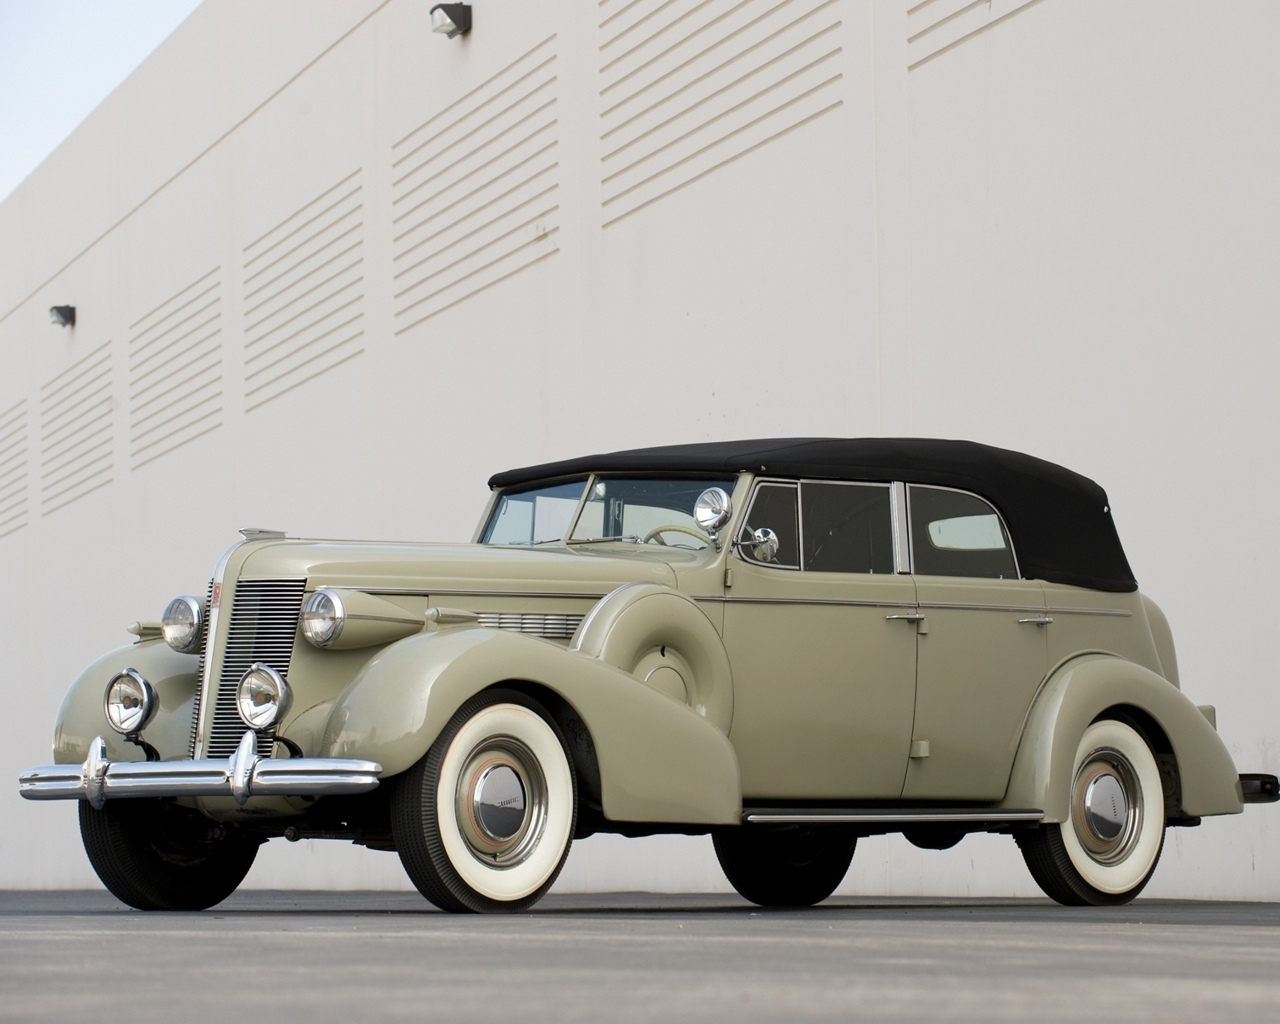 Vehicle industry american classic cars hd wallpapers for Car classic american